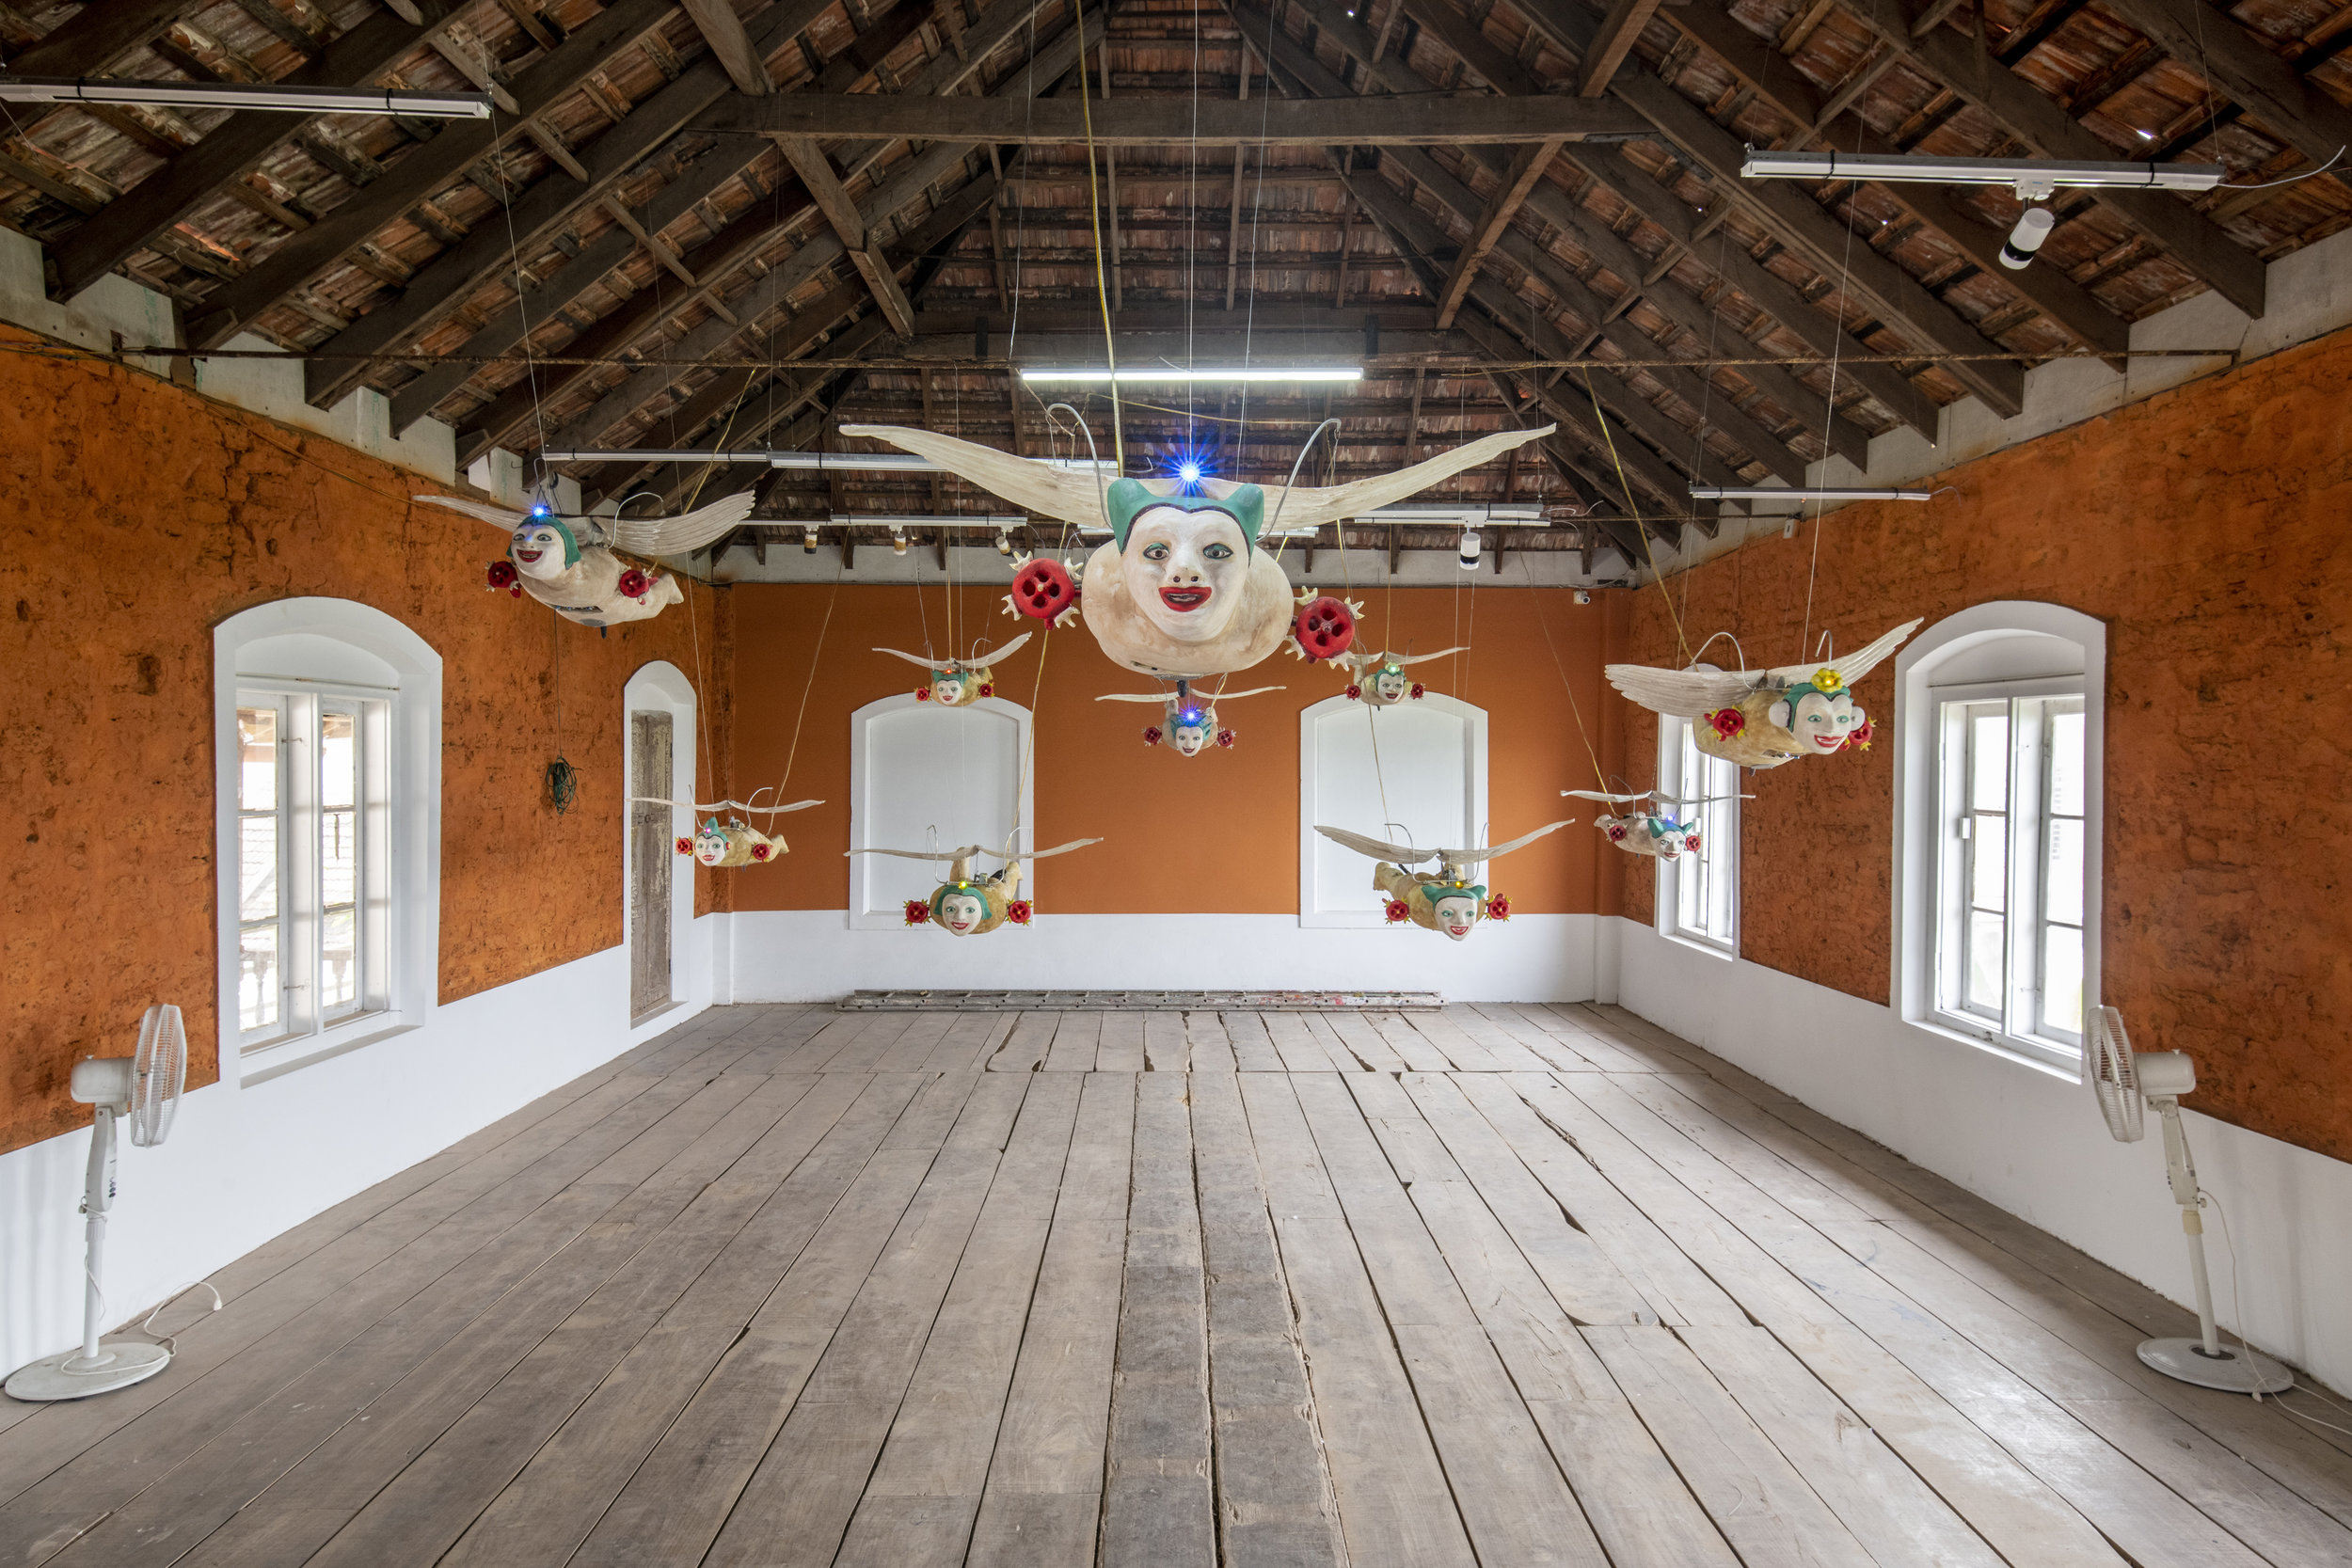 Heri Dono, installation view at Kochi-Muziris Biennale 2018, courtesy of Kochi Biennale Foundation